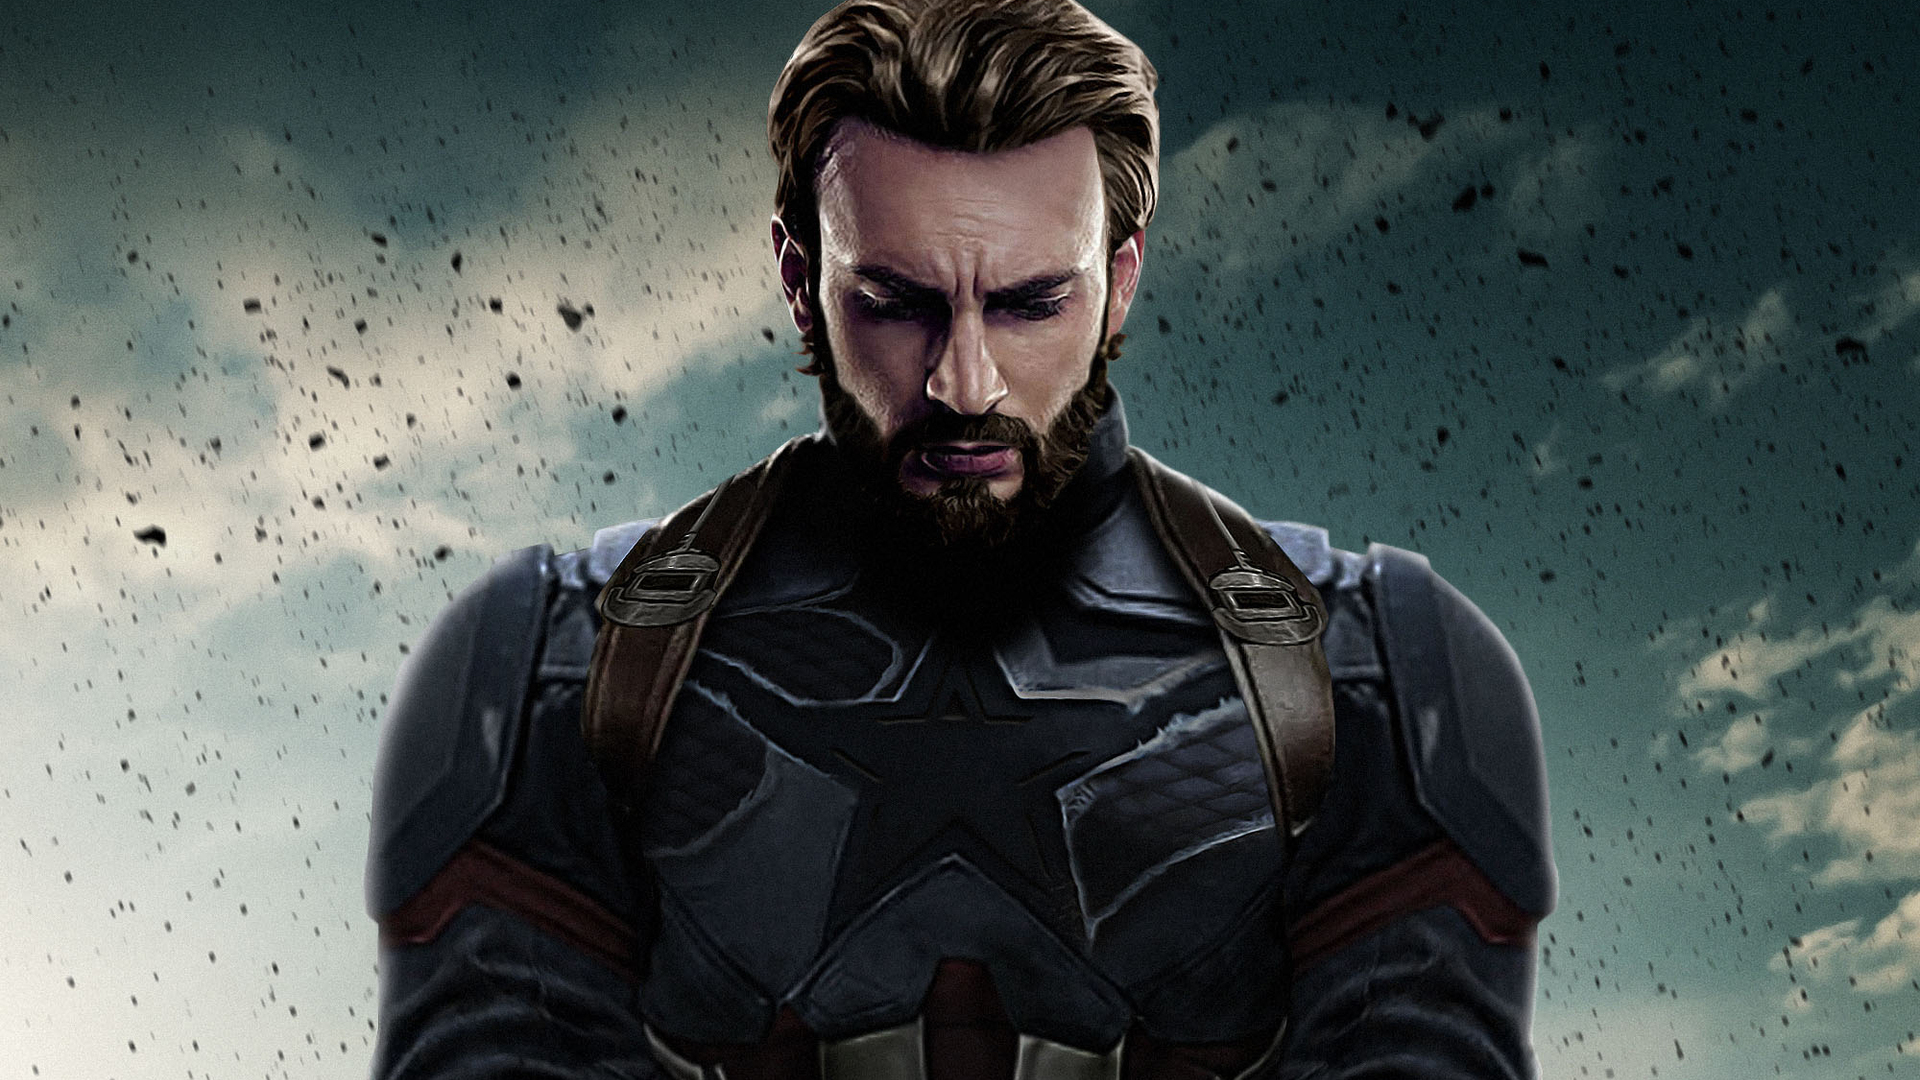 Captain America Wallpaper Hd Infinity War